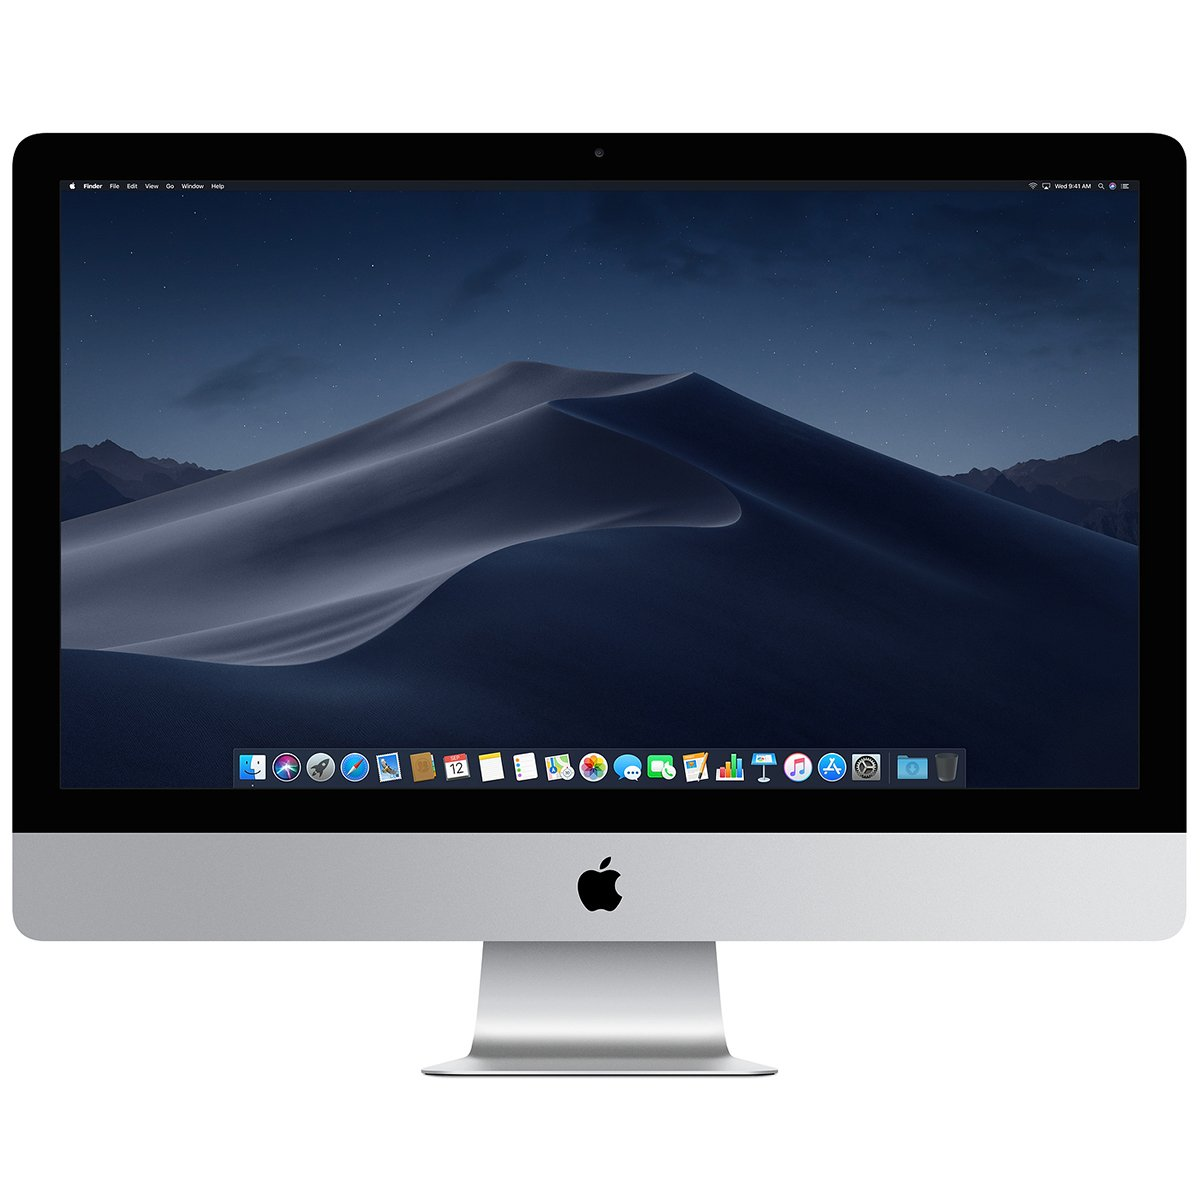 Apple IMAC 27* 3.7GHz 6-core Intel Core i5, Turbo Boost up to 4.6GHz/8GB/2TB Fusion Drive